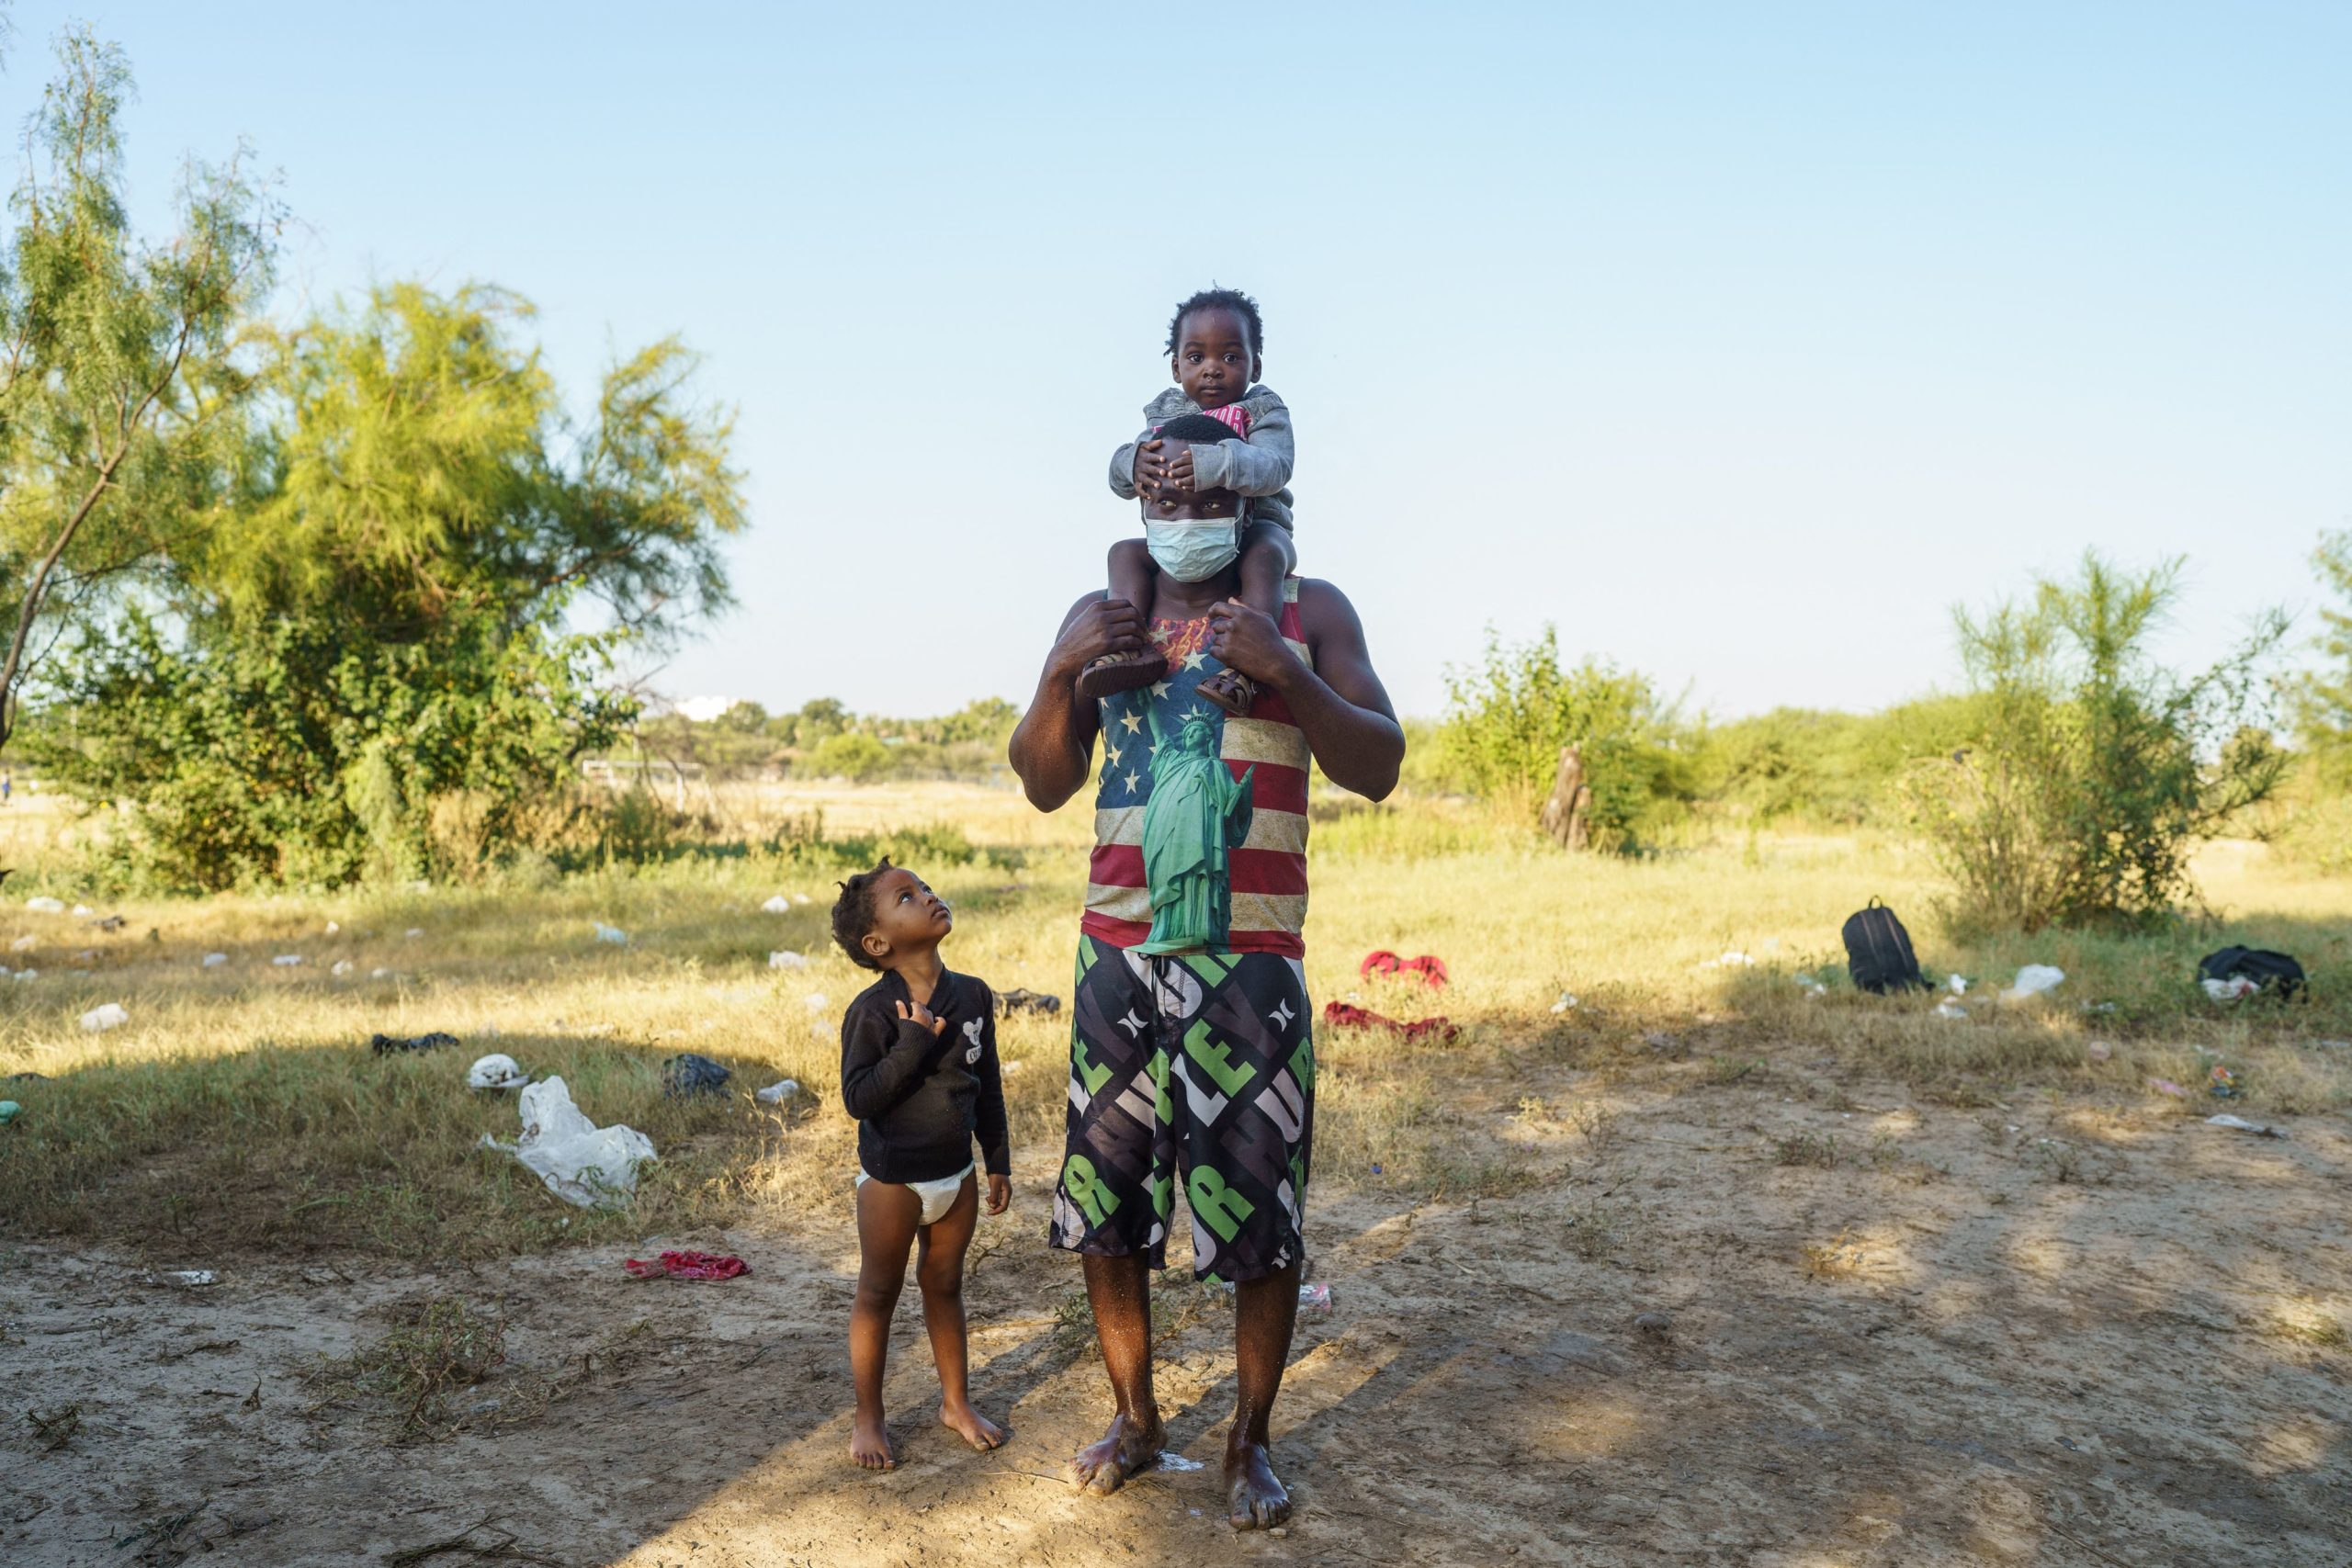 Ricardo, 31, from Haiti, holds his daughter Ricardini, 2, on his shoulders as another girl looks on, after they crossed the US-Mexico border, abandoning their goal of entering the United States in Ciudad Acuna, Coahuila state, Mexico on September 20, 2021. (Photo by PAUL RATJE/AFP via Getty Images)